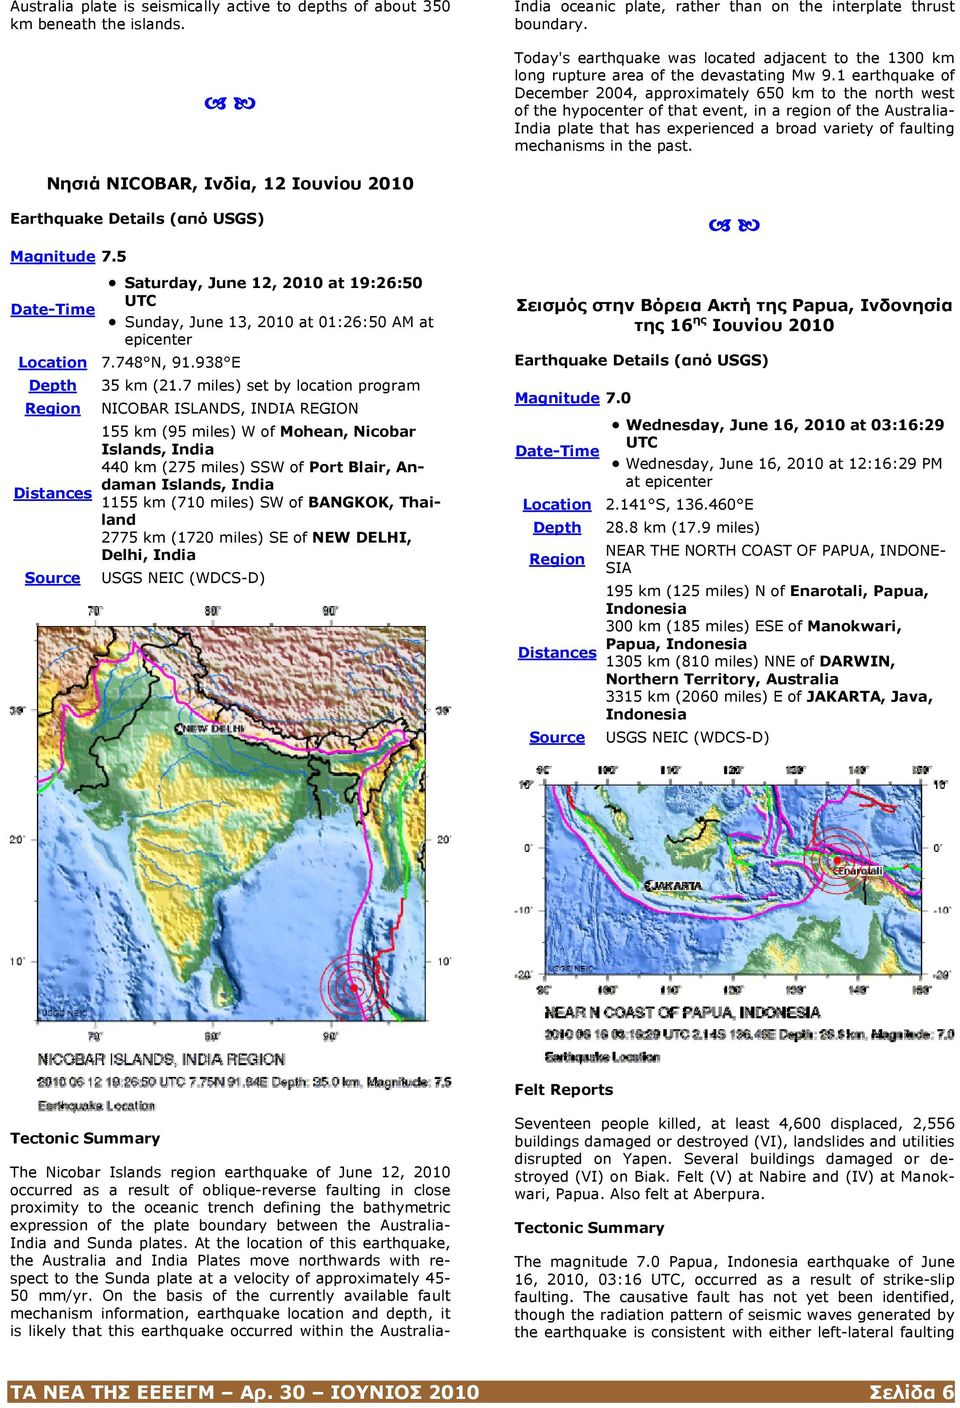 1 earthquake of December 2004, approximately 650 km to the north west of the hypocenter of that event, in a region of the Australia- India plate that has experienced a broad variety of faulting